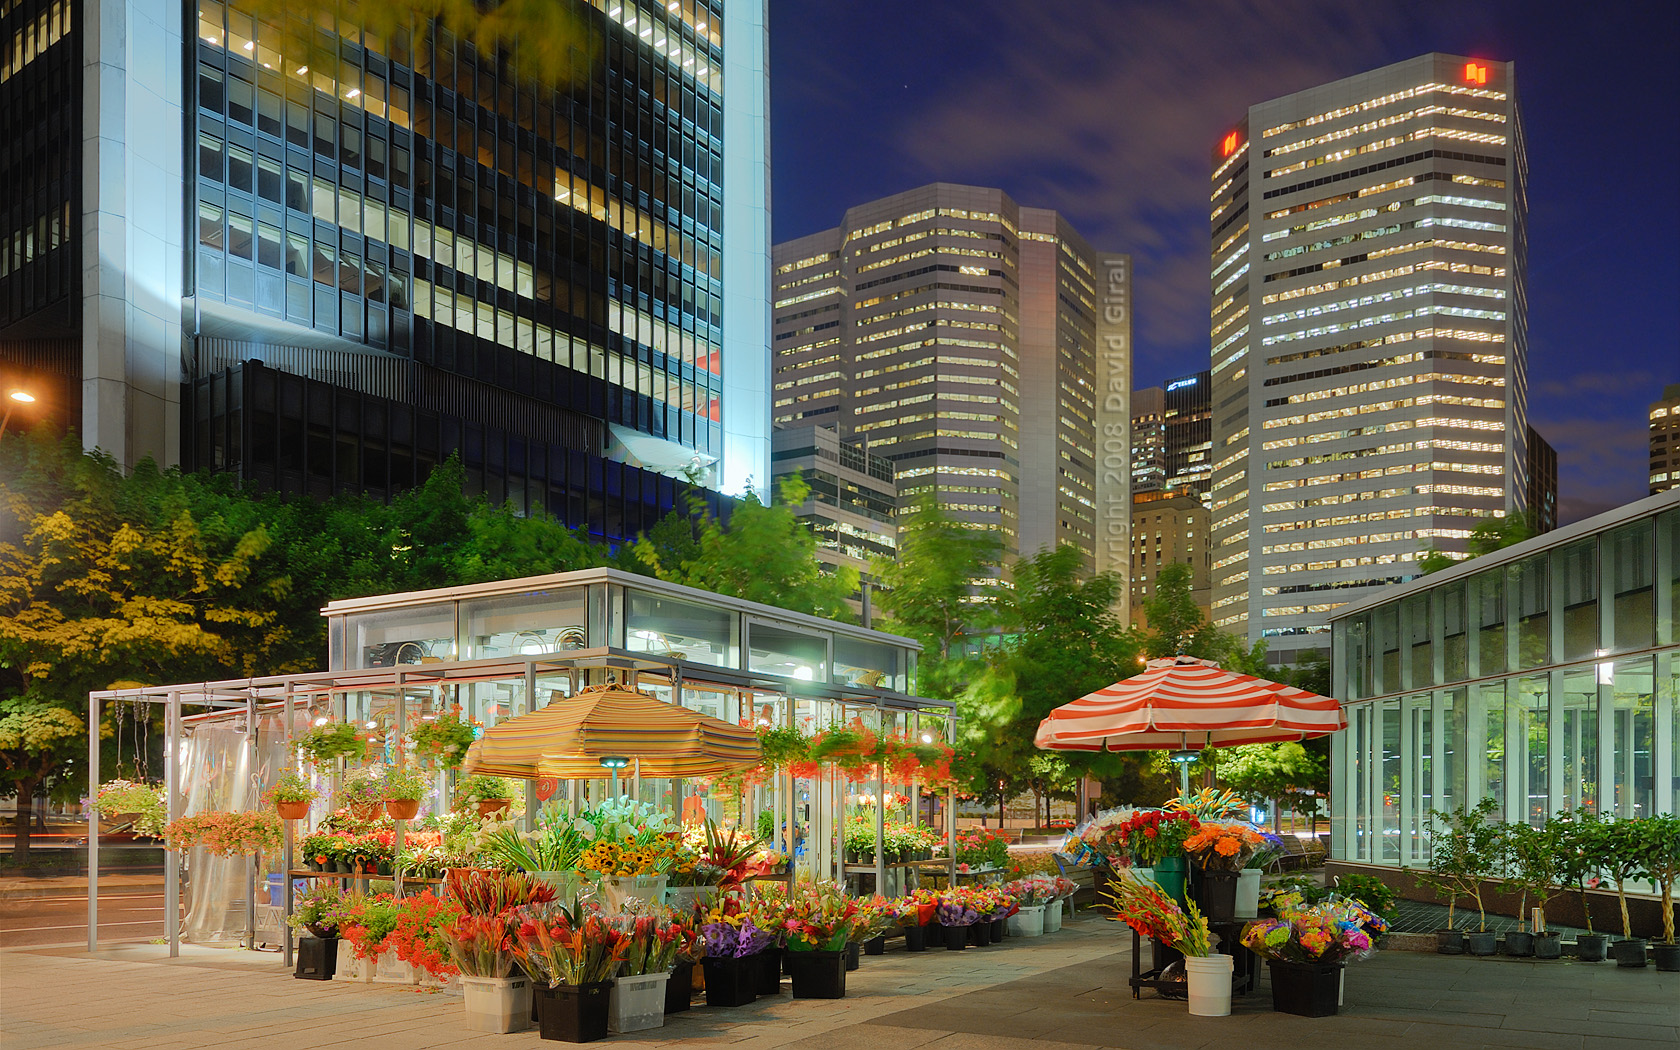 Exploring Montreal: Blue Hour at Square Victoria &#8211; Financial District